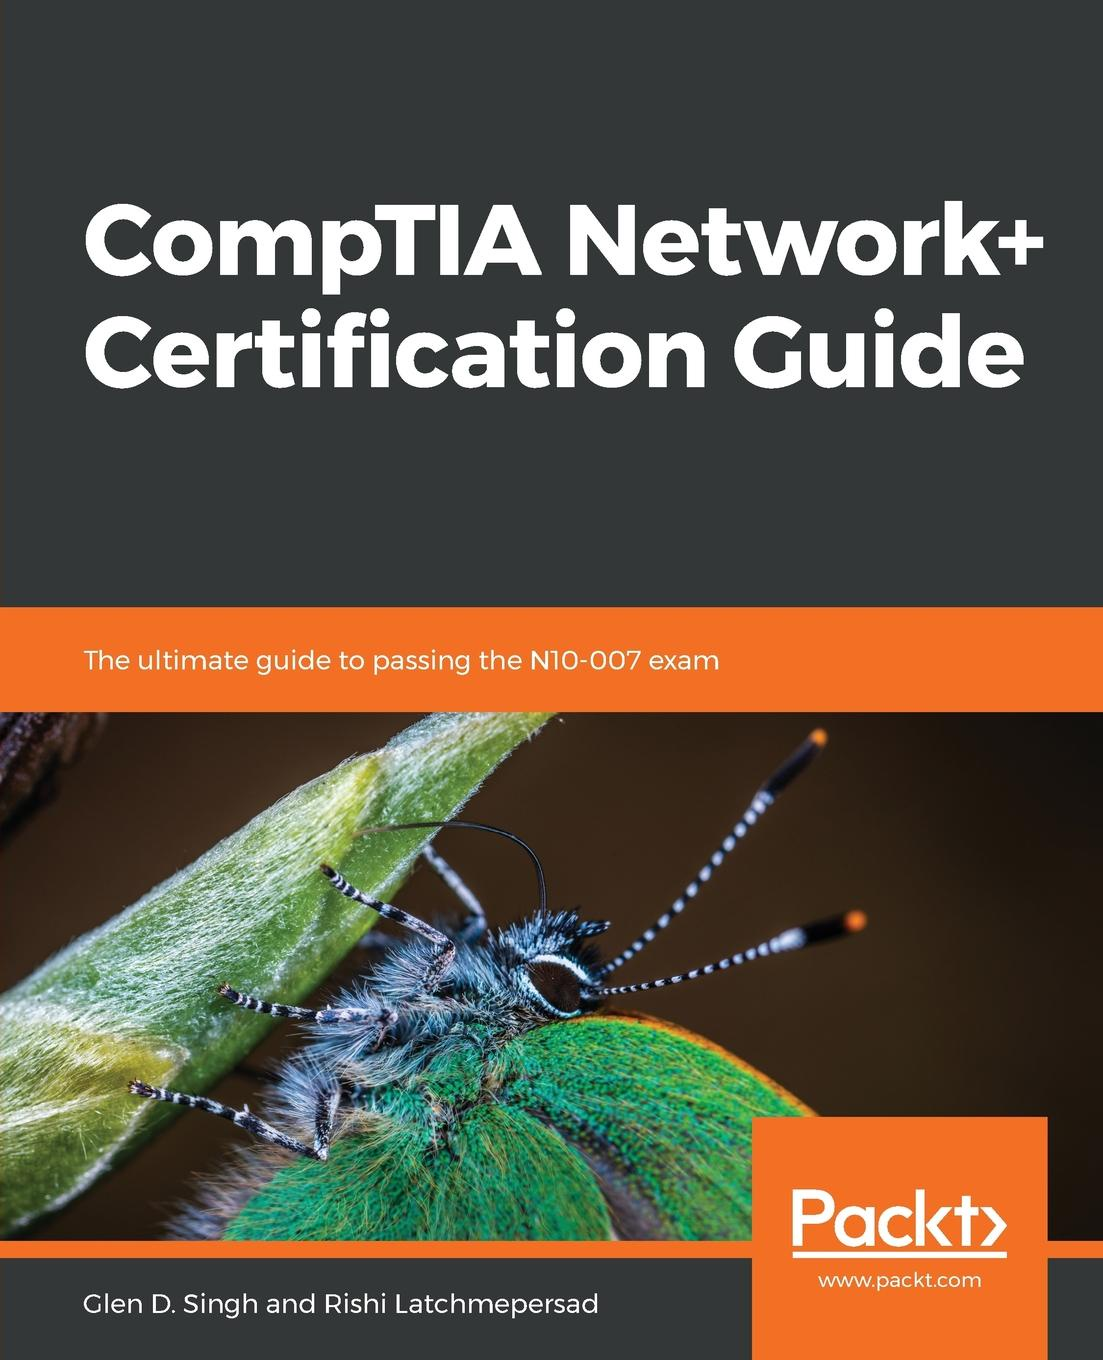 Glen D. Singh, Rishi Latchmepersad CompTIA Network+ Certification Guide glen clarke e ccent certification all in one for dummies